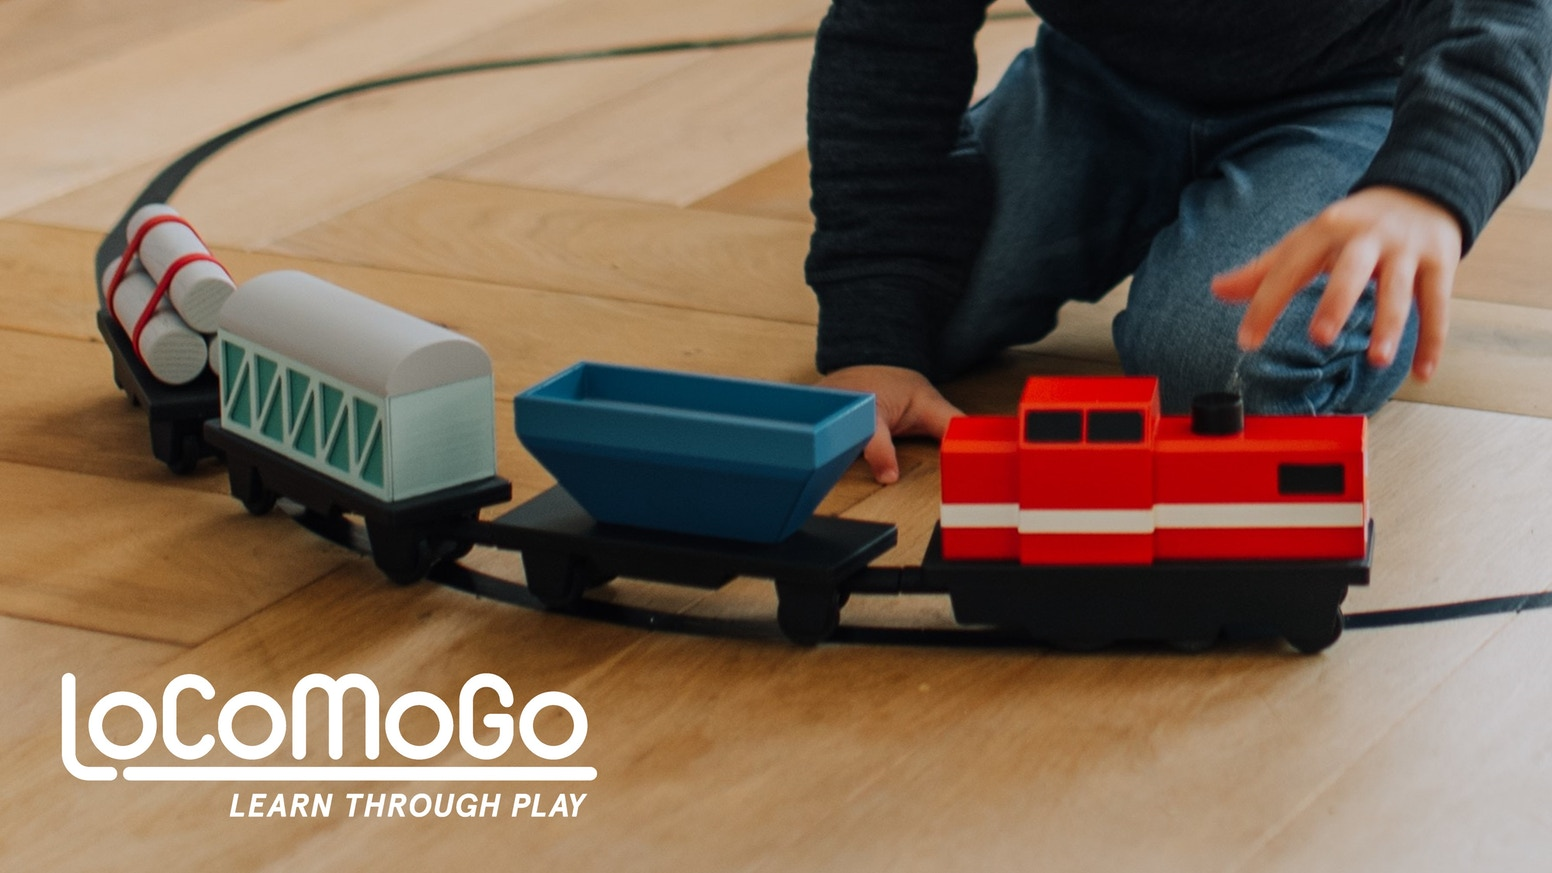 The toy train teaching children aged 4-12 coding through play. Educational journey from screen-less play to full on programming.